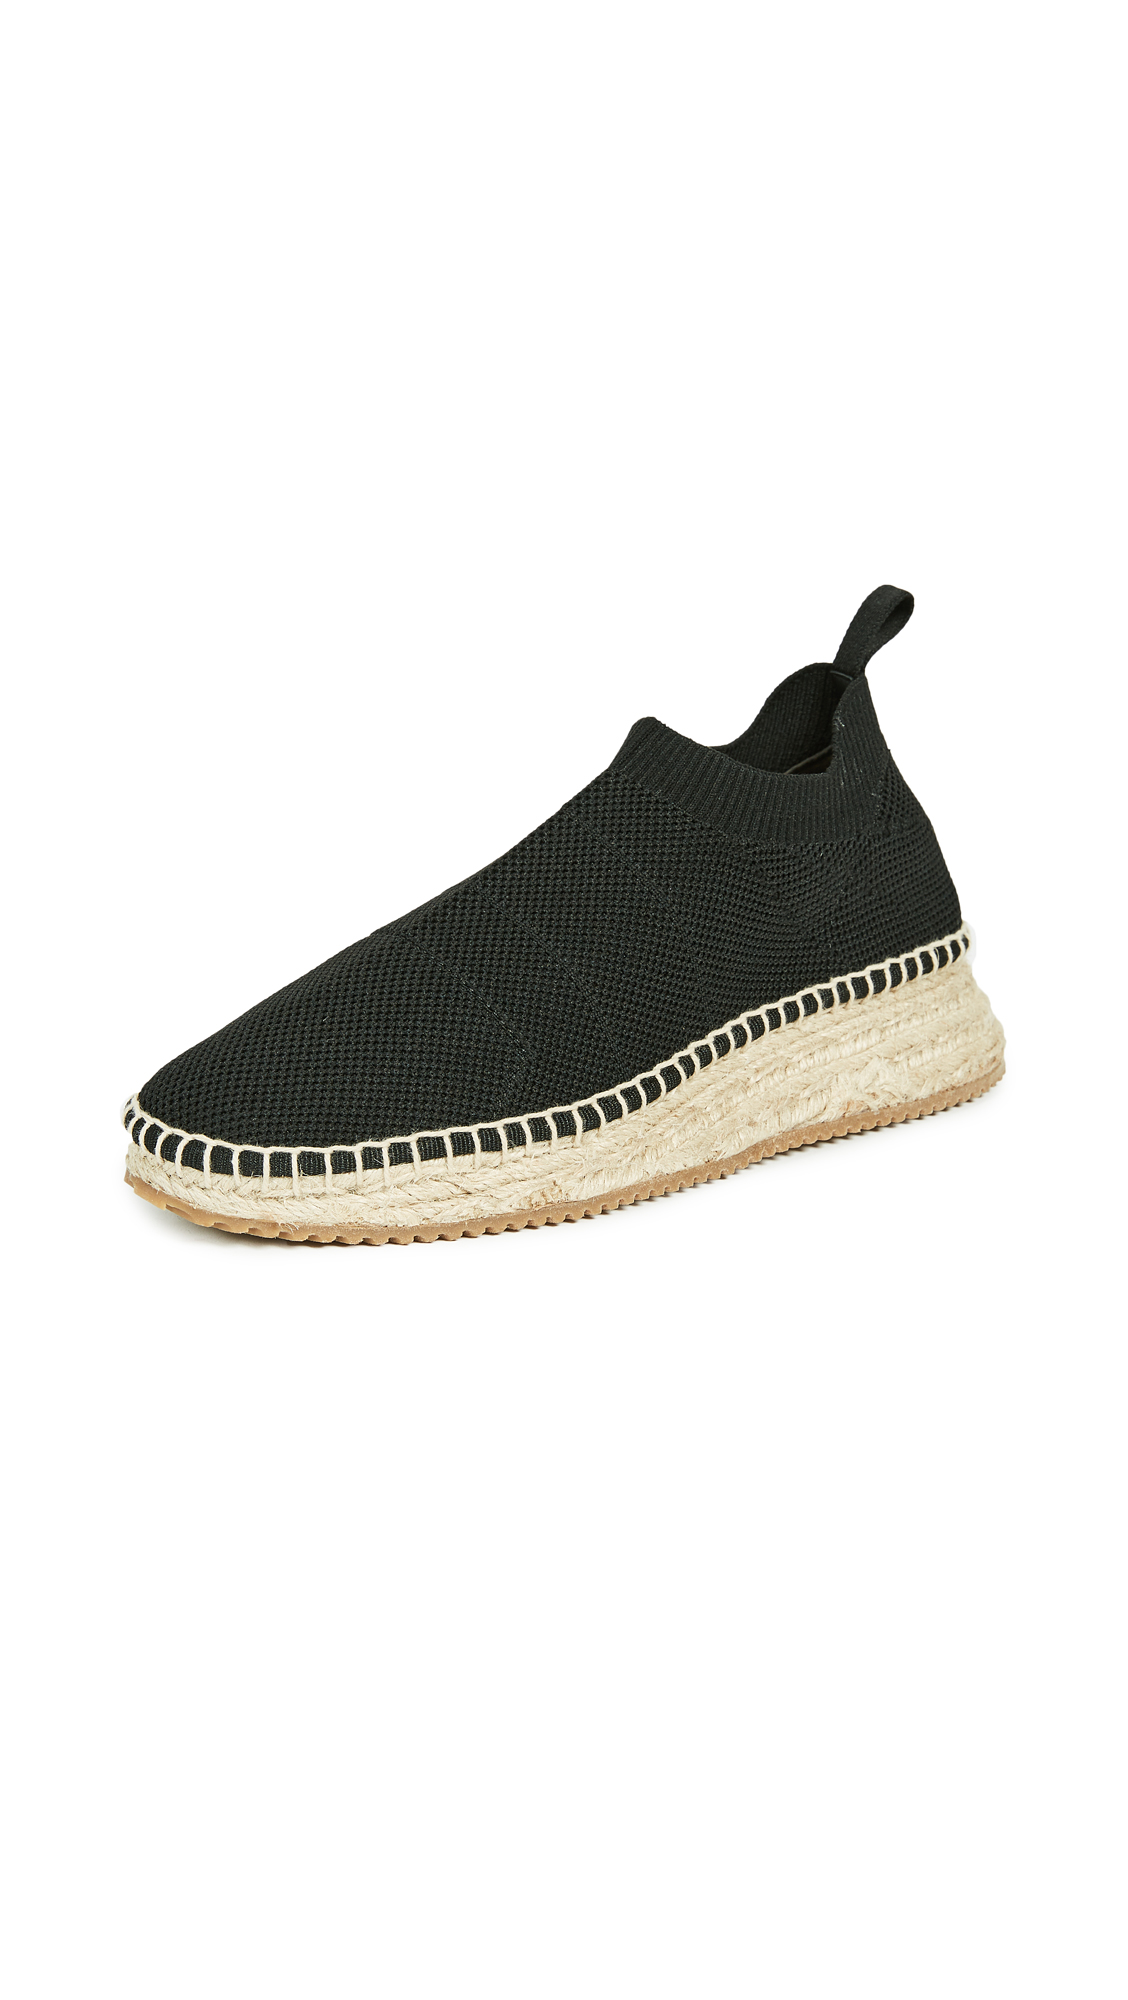 Alexander Wang Dylan Low Knit Espadrille Runners - Black